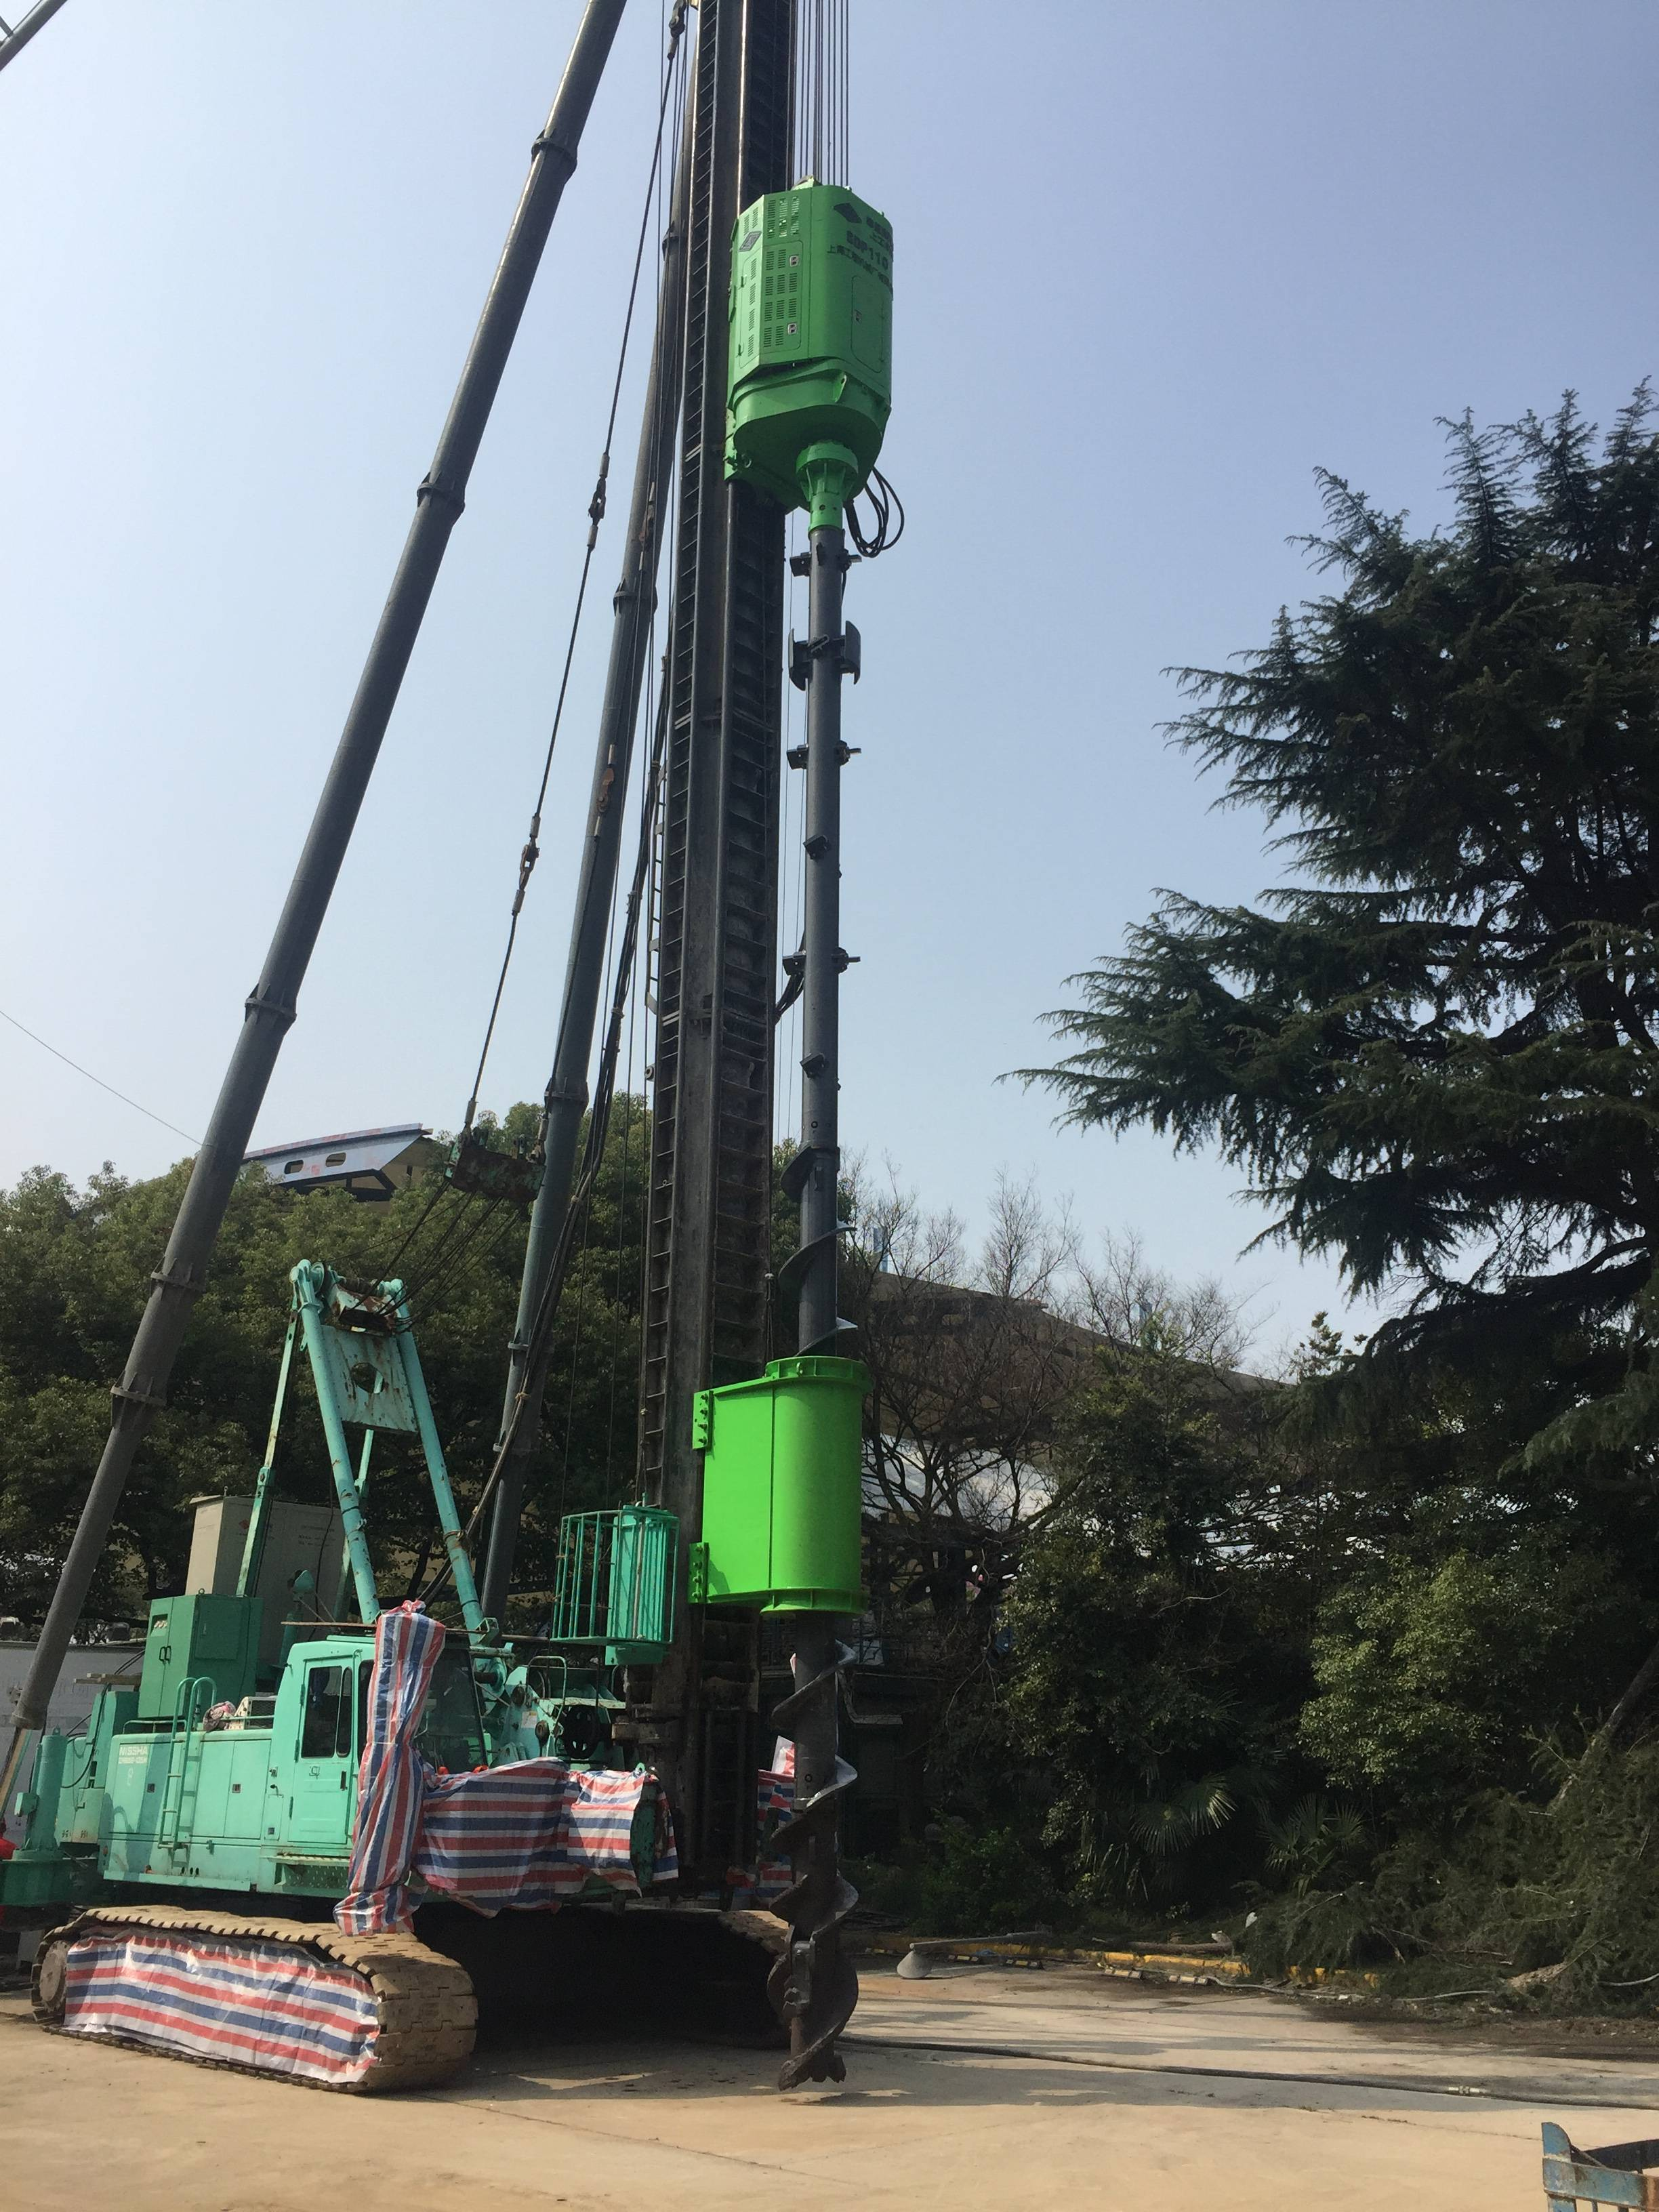 2019 High quality Sdp220 Pre-Bored Pre-Cast Piling Equipment - Pre-bored Pre-cast Piling Equipment – Engineering Machinery